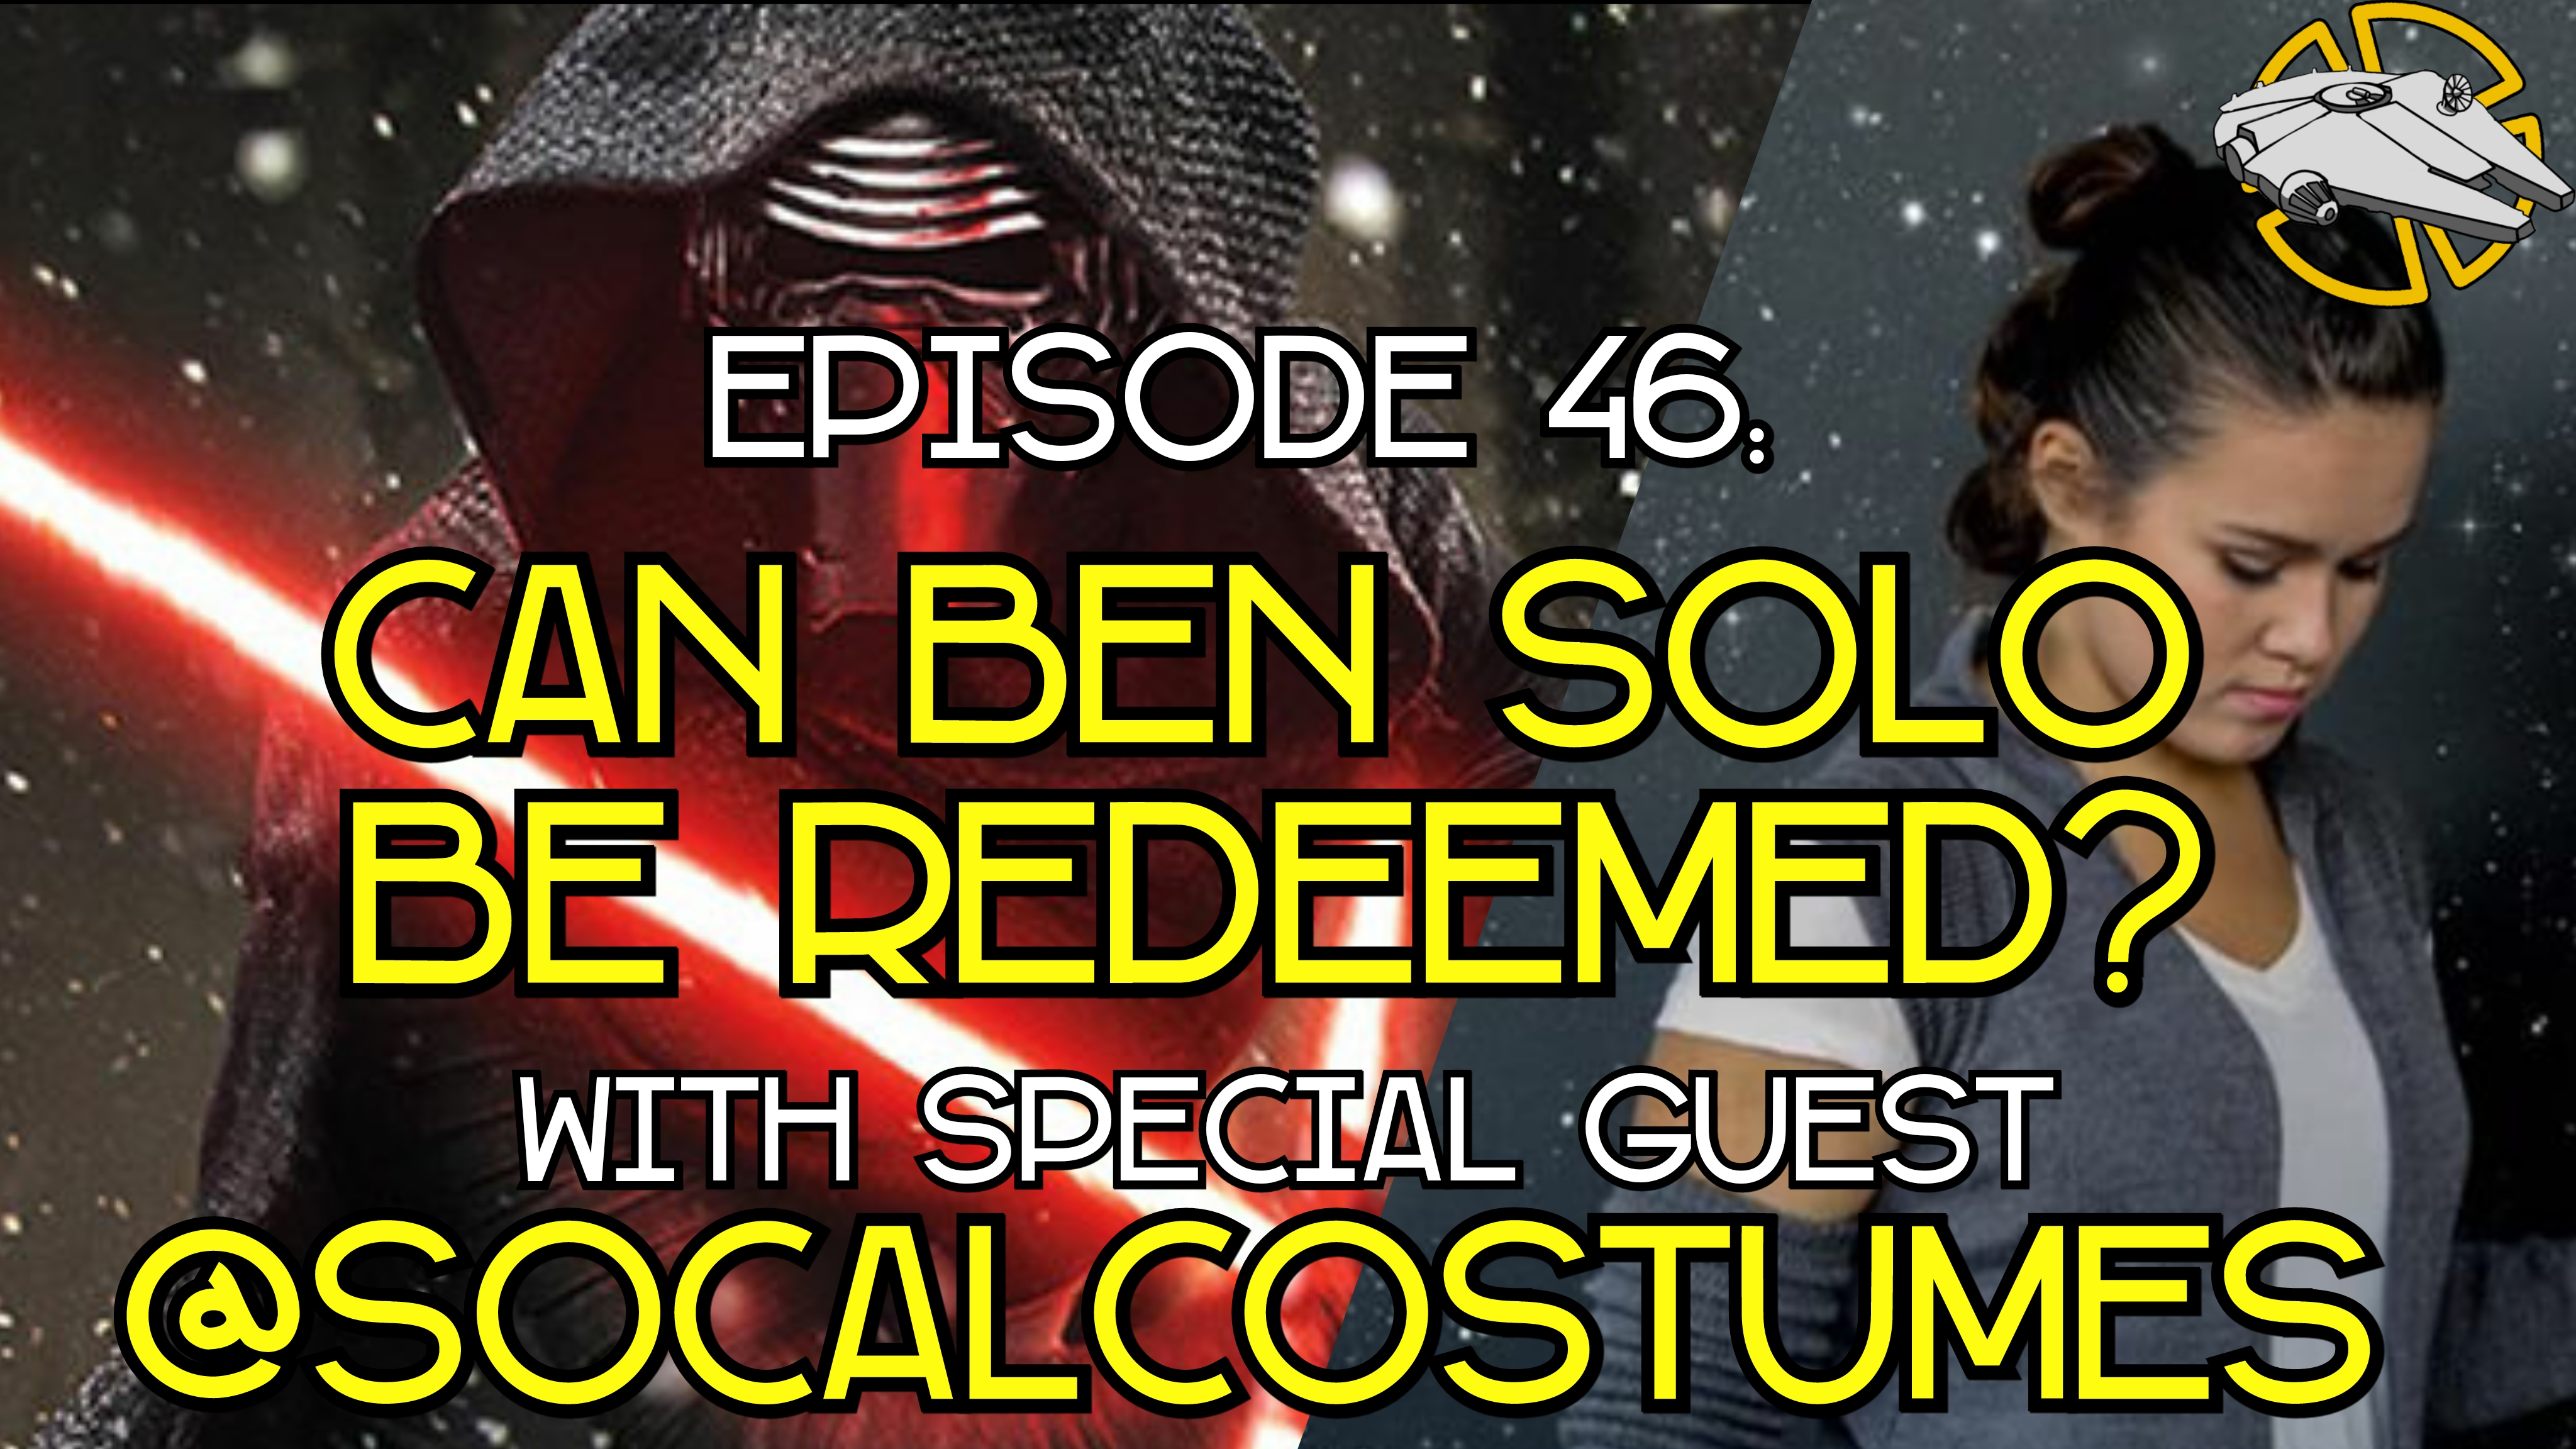 Episode 46: Can Ben Solo Be Redeemed? with Special Guest SoCalCostumes